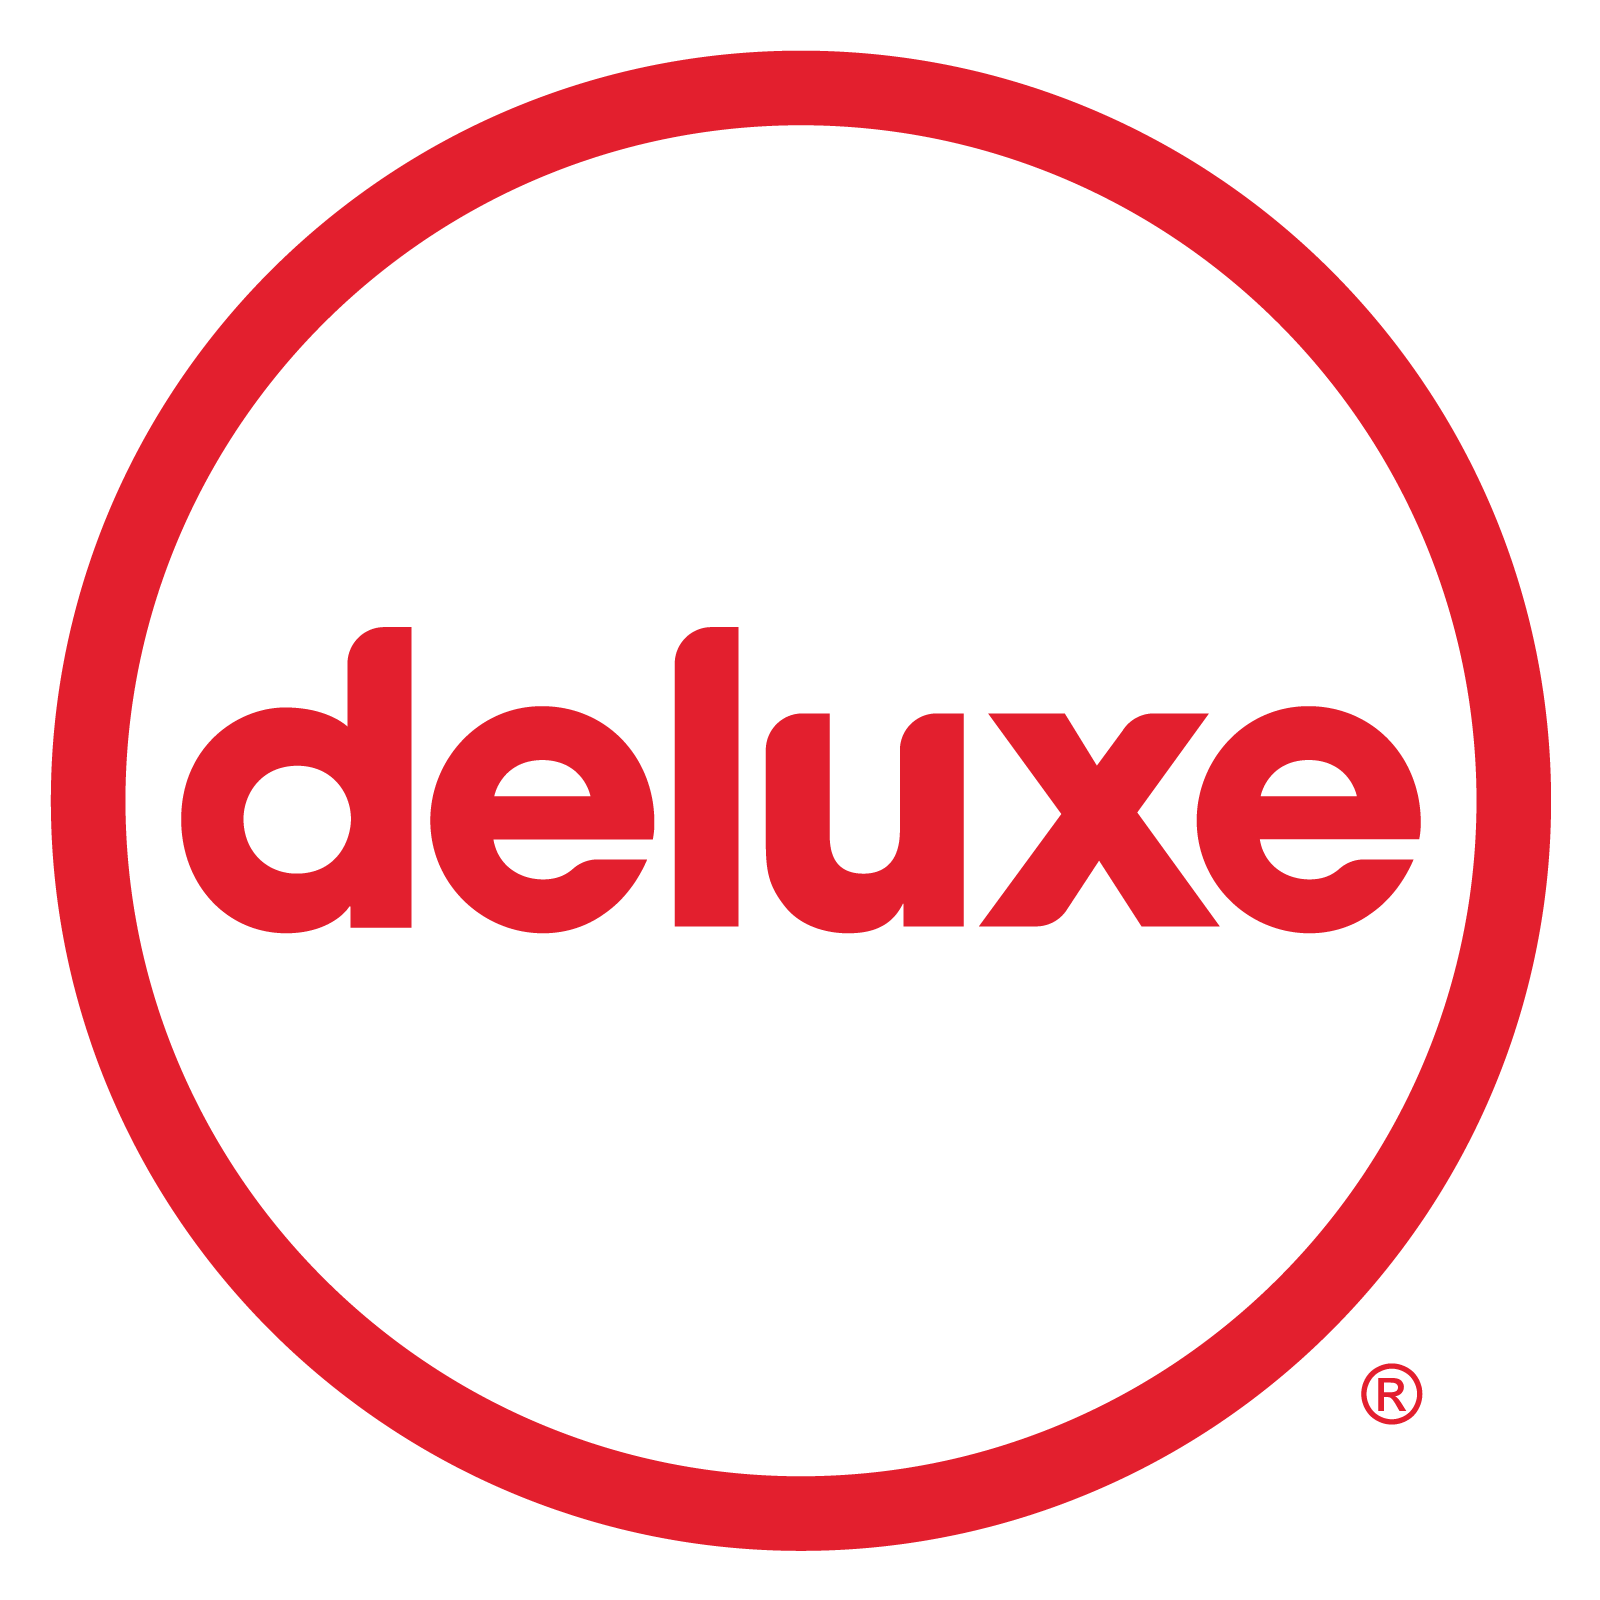 deluxe-medallion-red.png